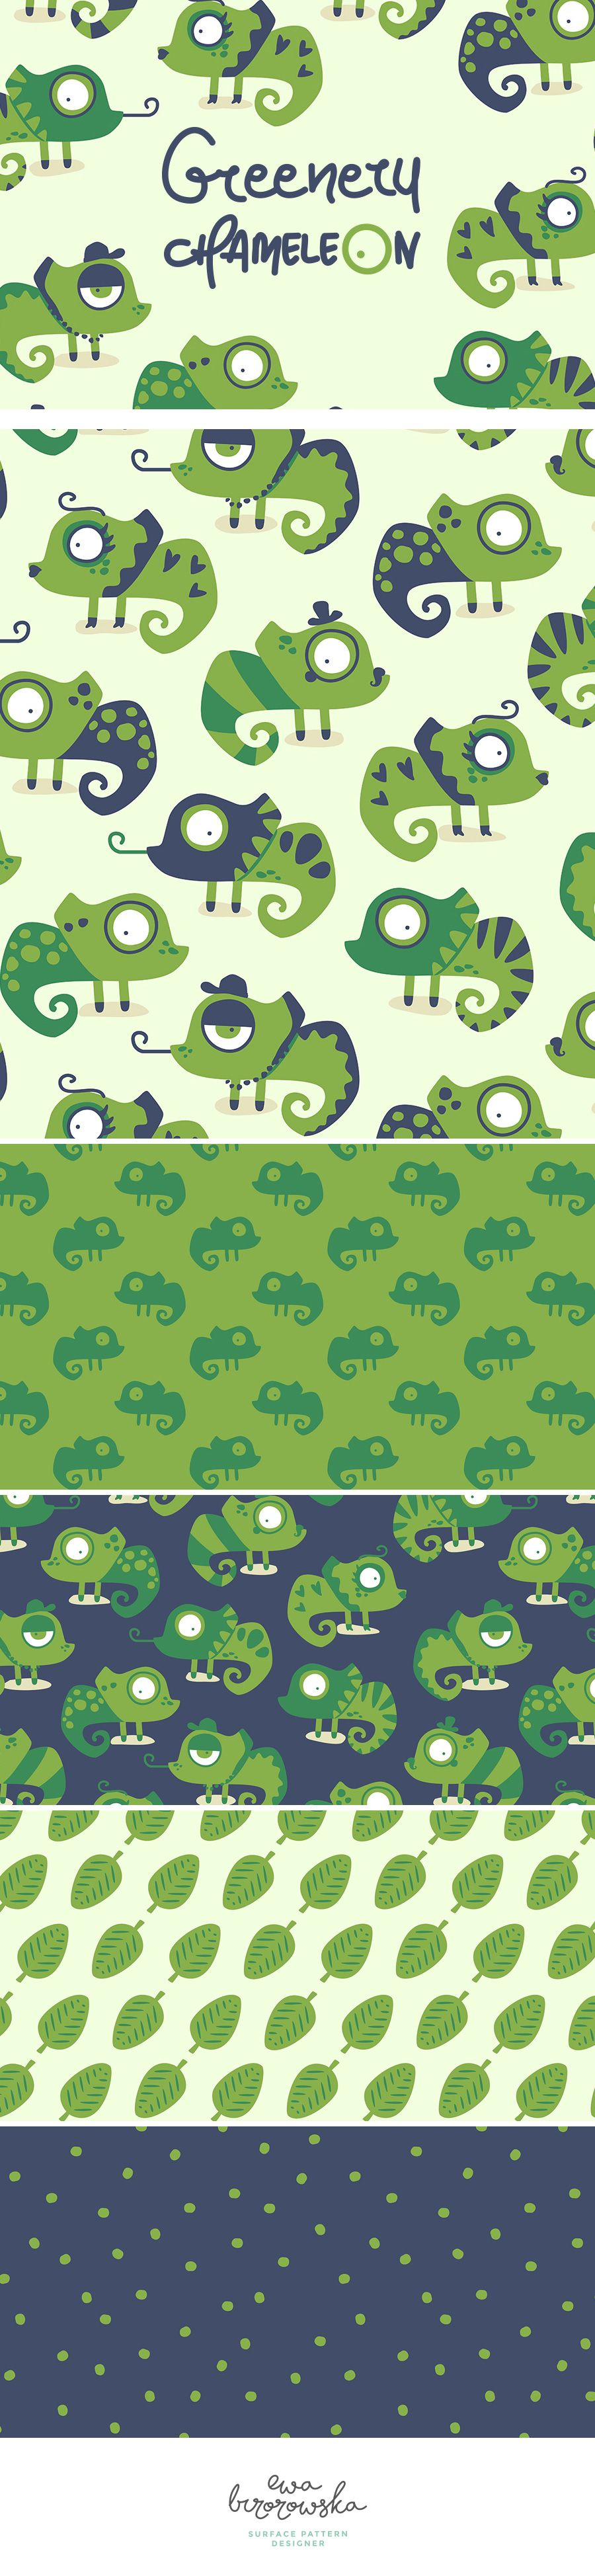 Greenery Chameleon - Surface Pattern Design Collection. Greenery is the colour chosen by Pantone as a color of the year 2017. It's bold, fresh and ehmm... green! Just perfect for chameleon ;)